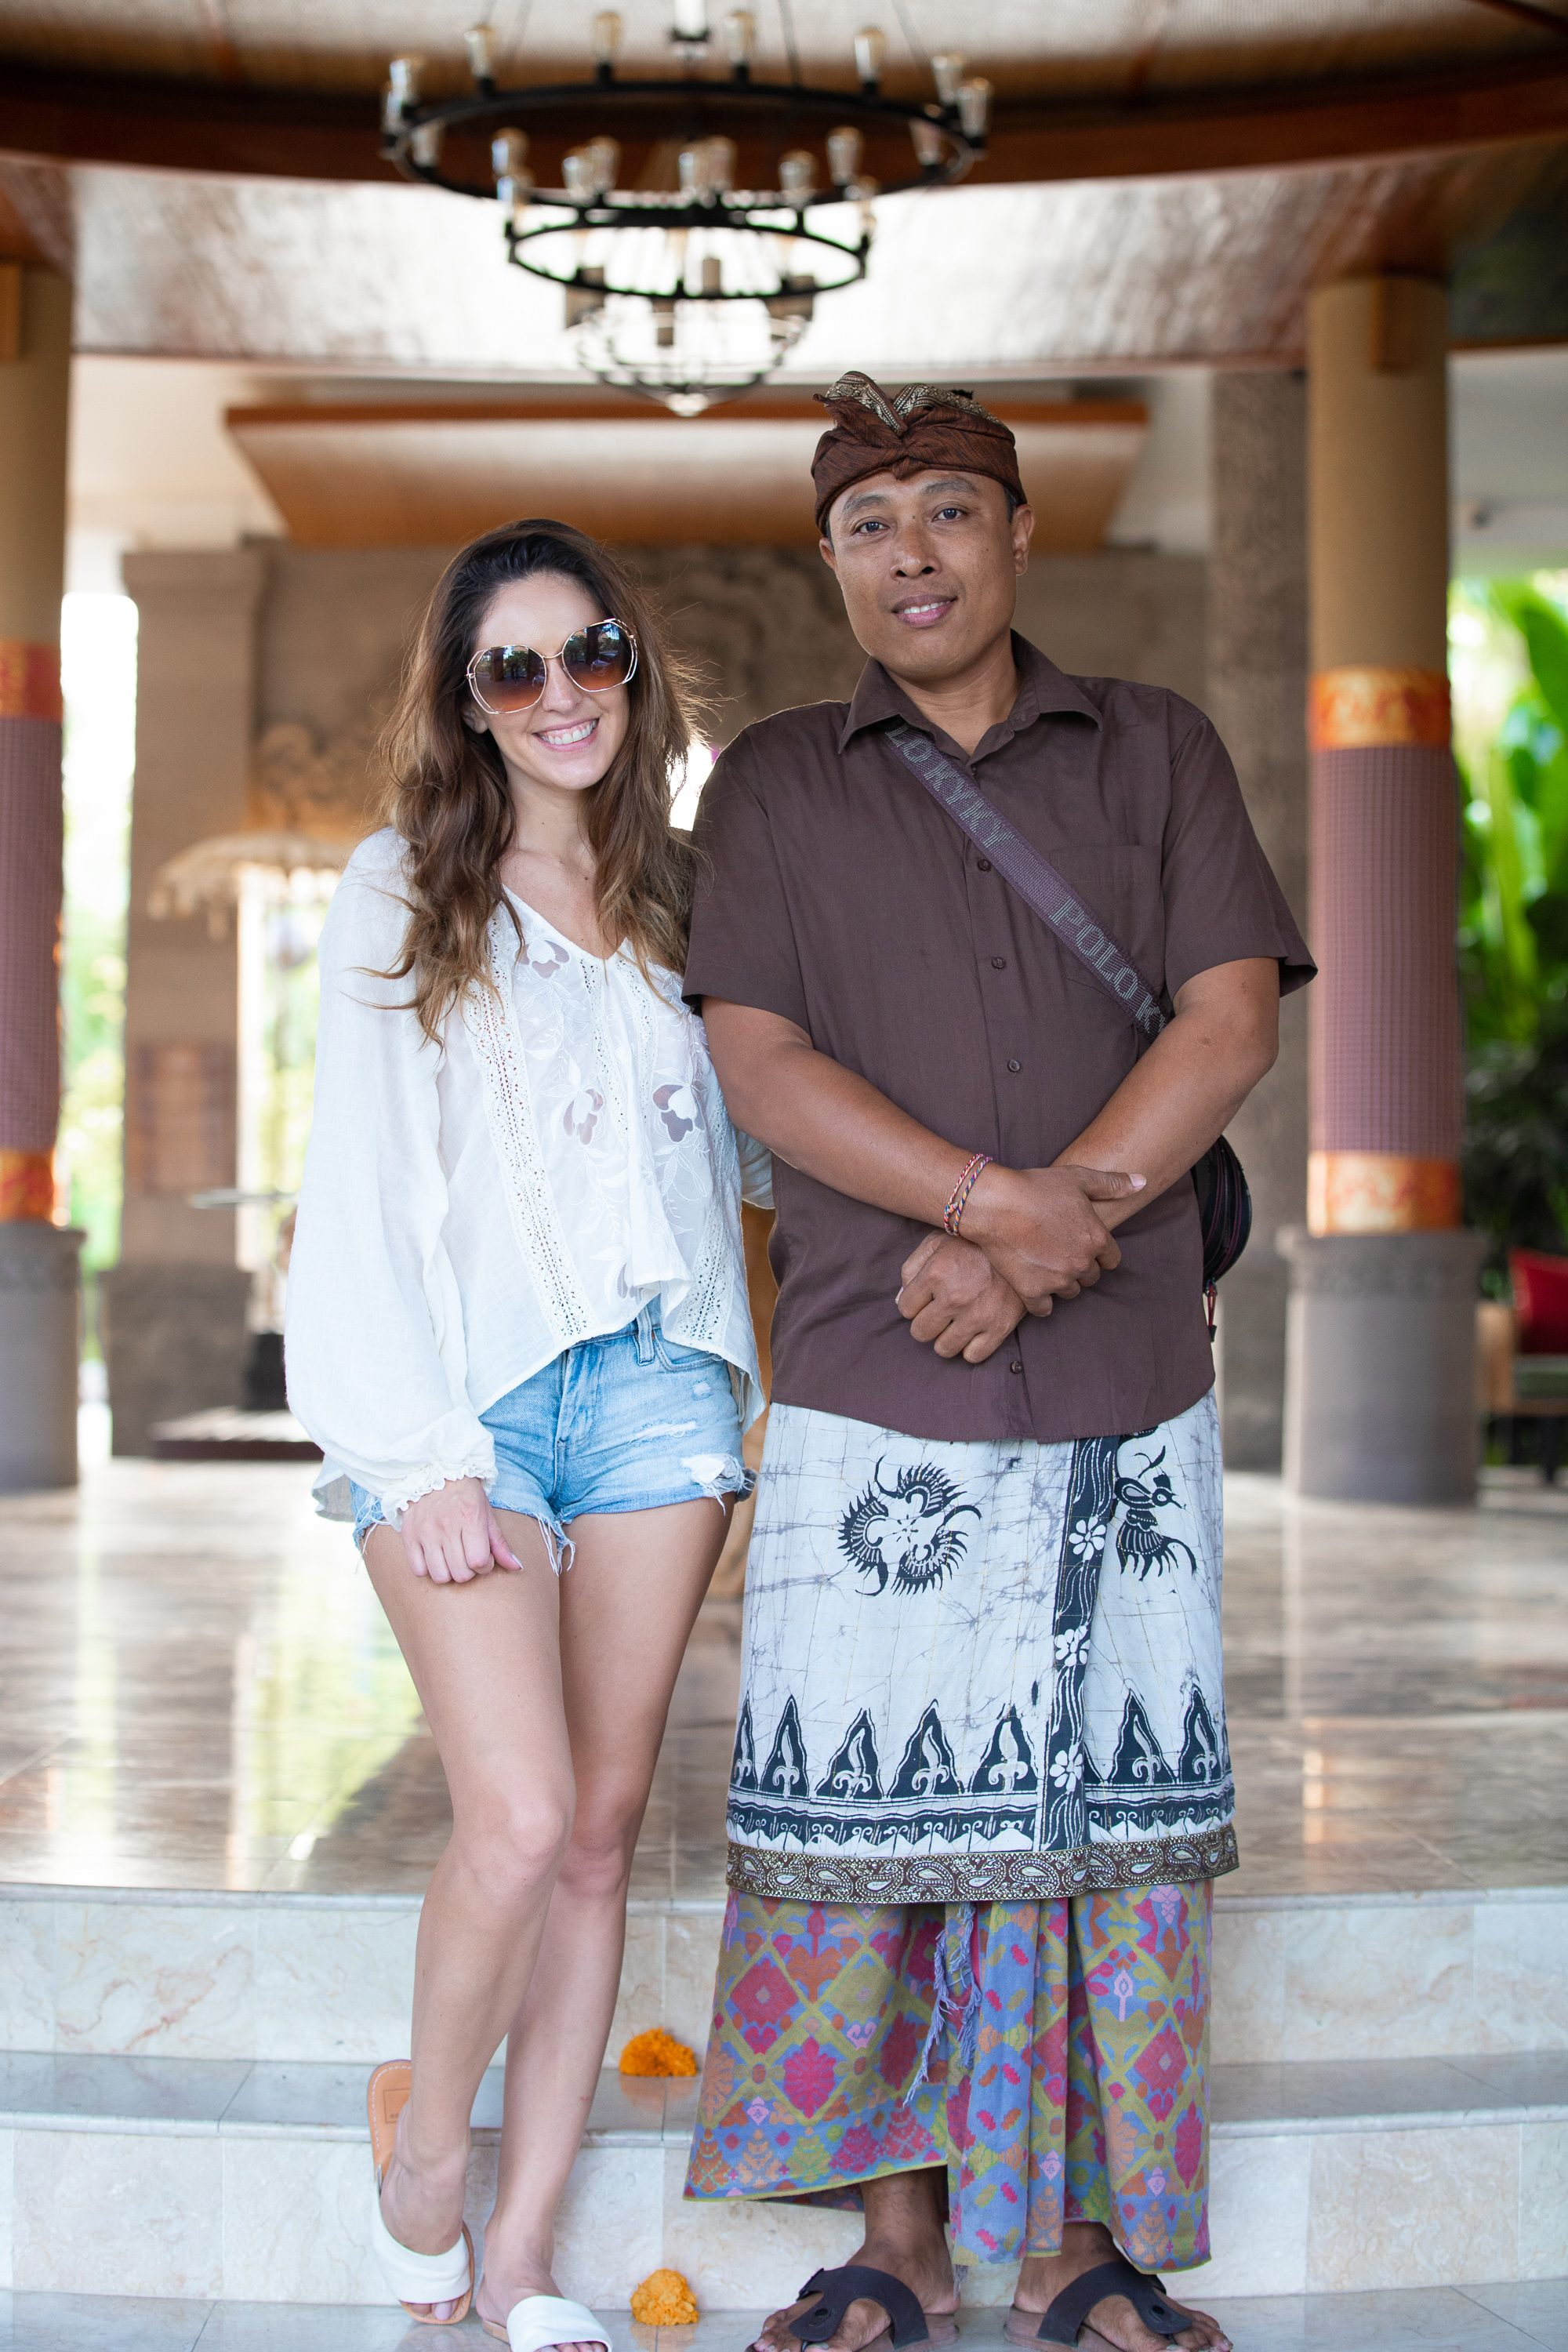 Bali travel guide, hiring a driver in bali, prices for a driver in bali